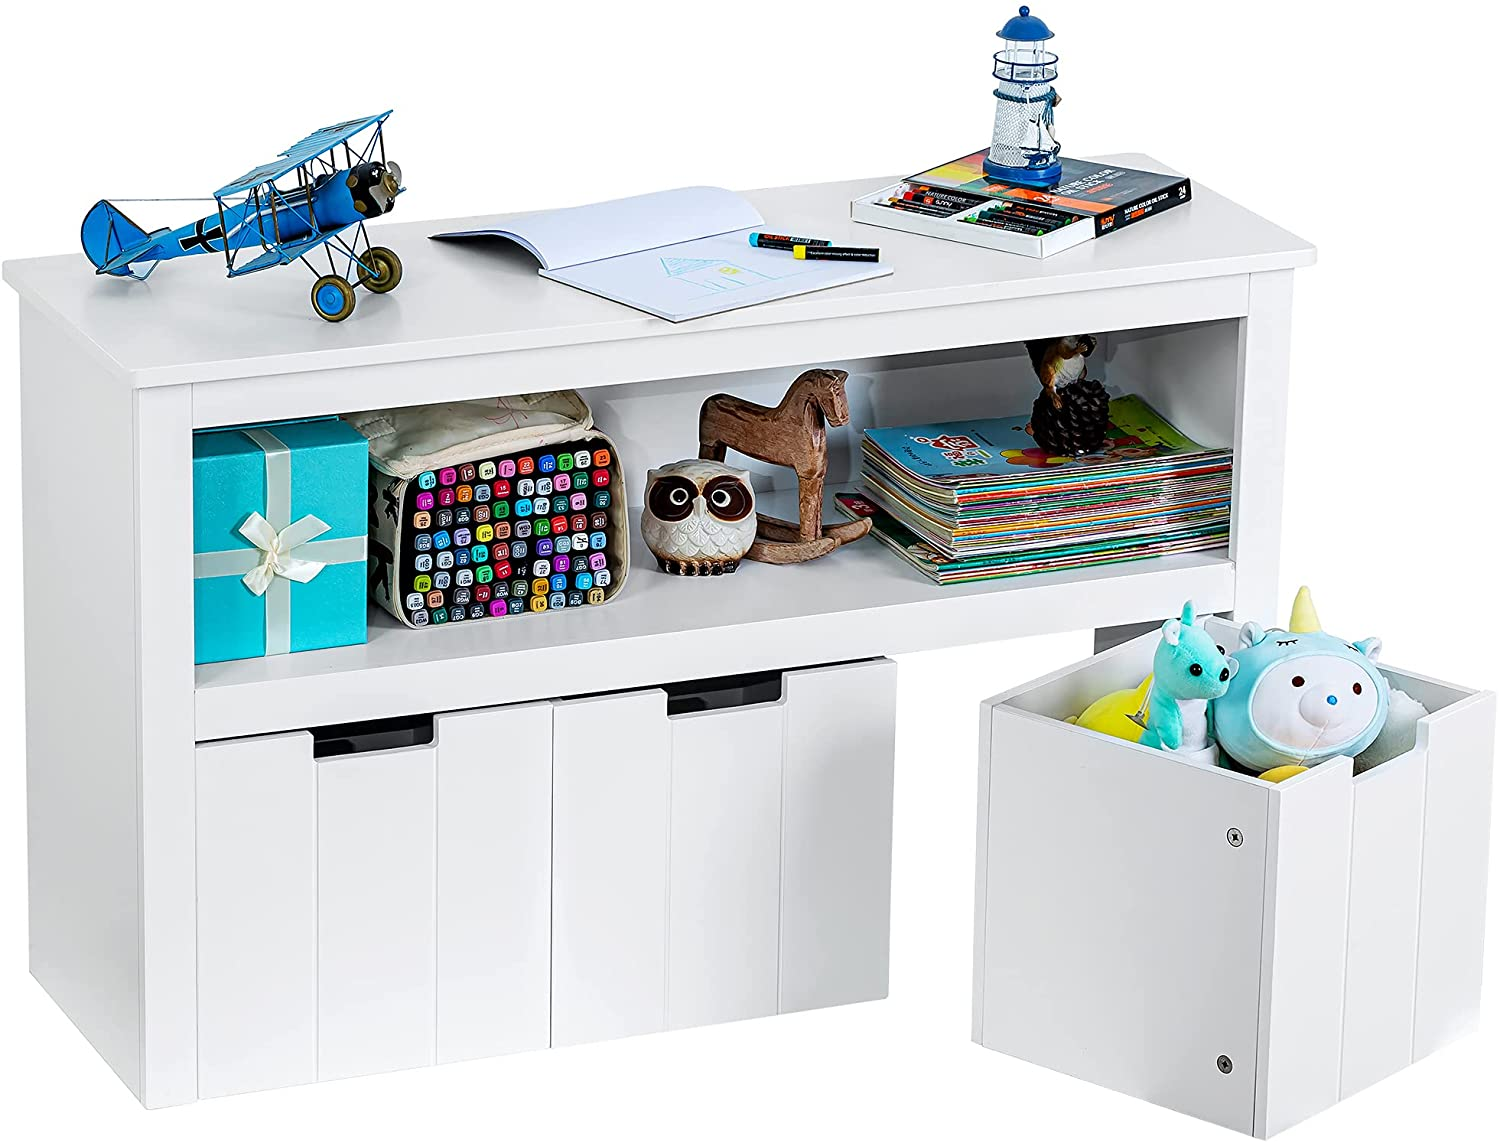 ZENODDLY Kids Toy Storage Organizer for Kids Room Organizers and Storage - 3 Drawers with Hidden Wheels, Multifunctional Wooden Kids' Bookcases, Cabinets & Shelves for Playroom Storage, White